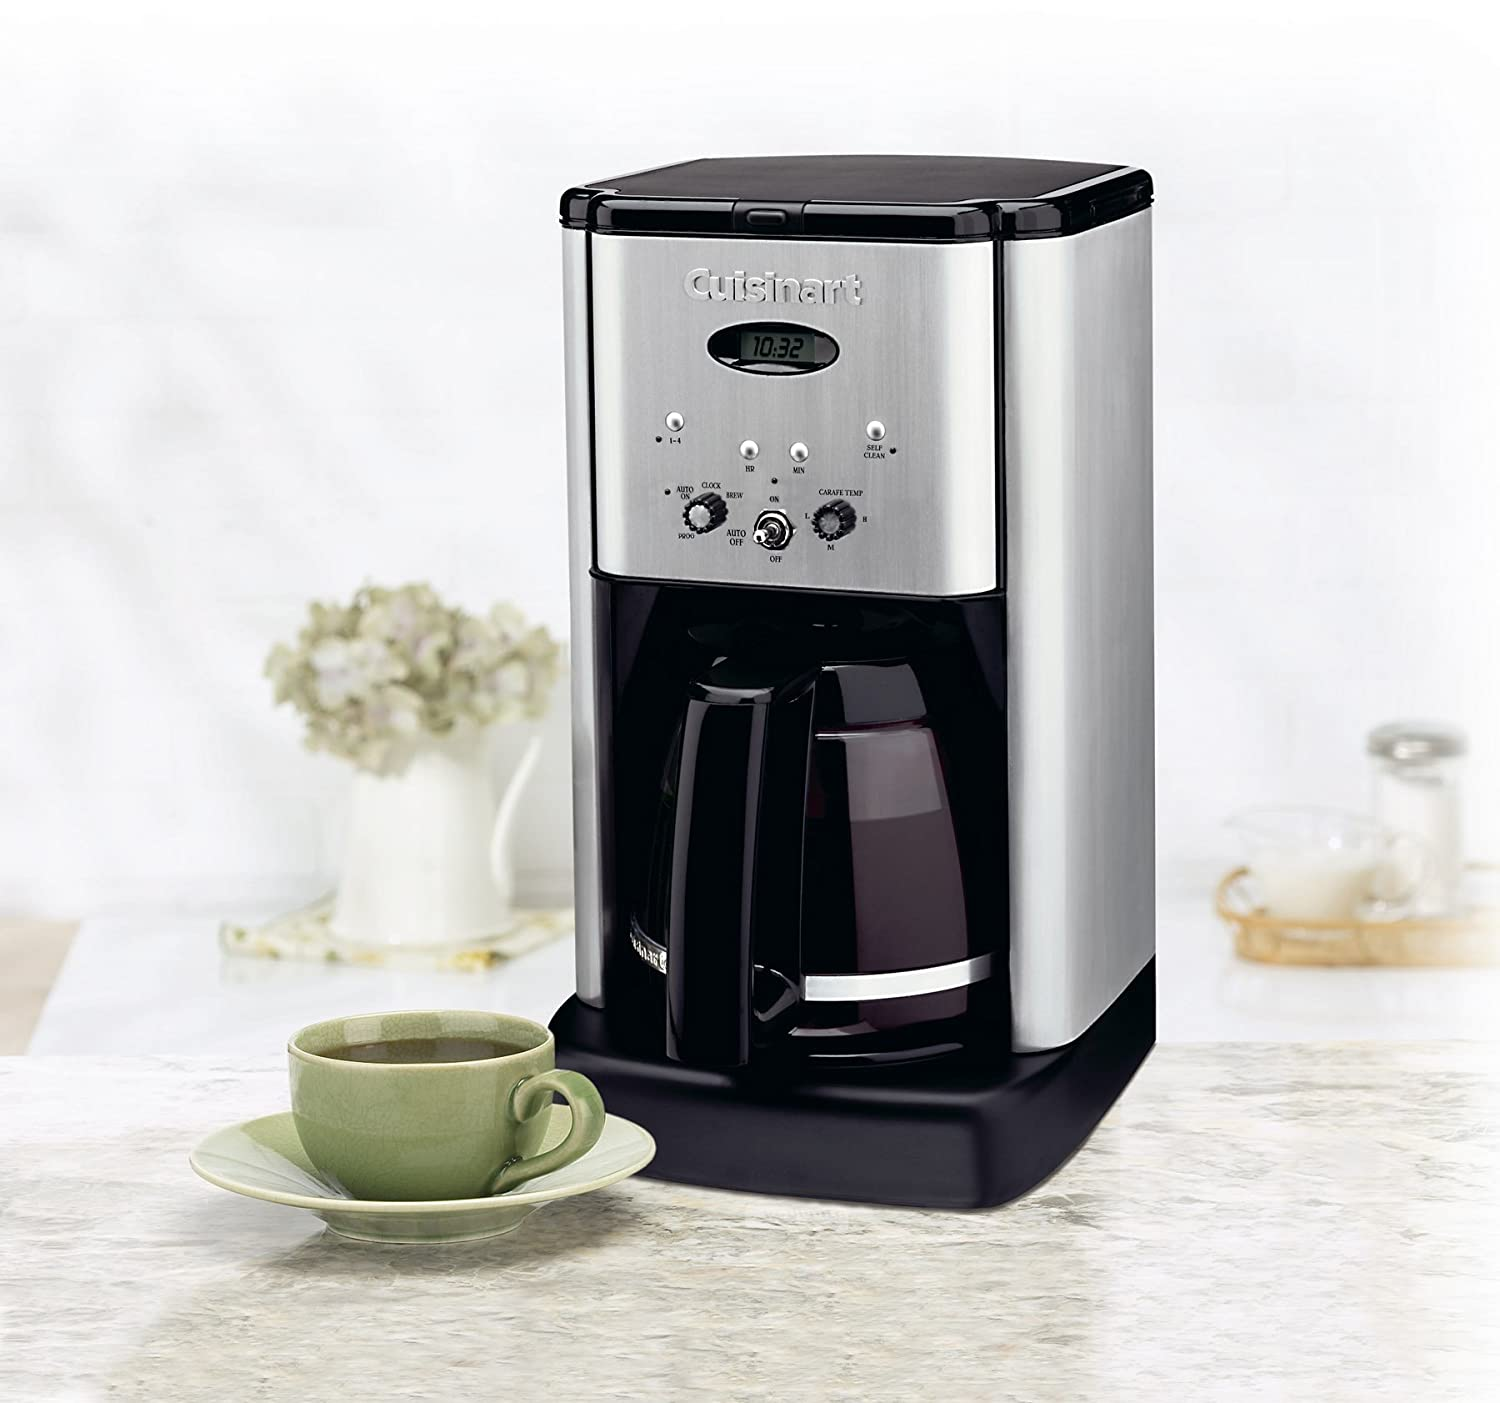 Coffee maker comparison guide Coffee maker brands